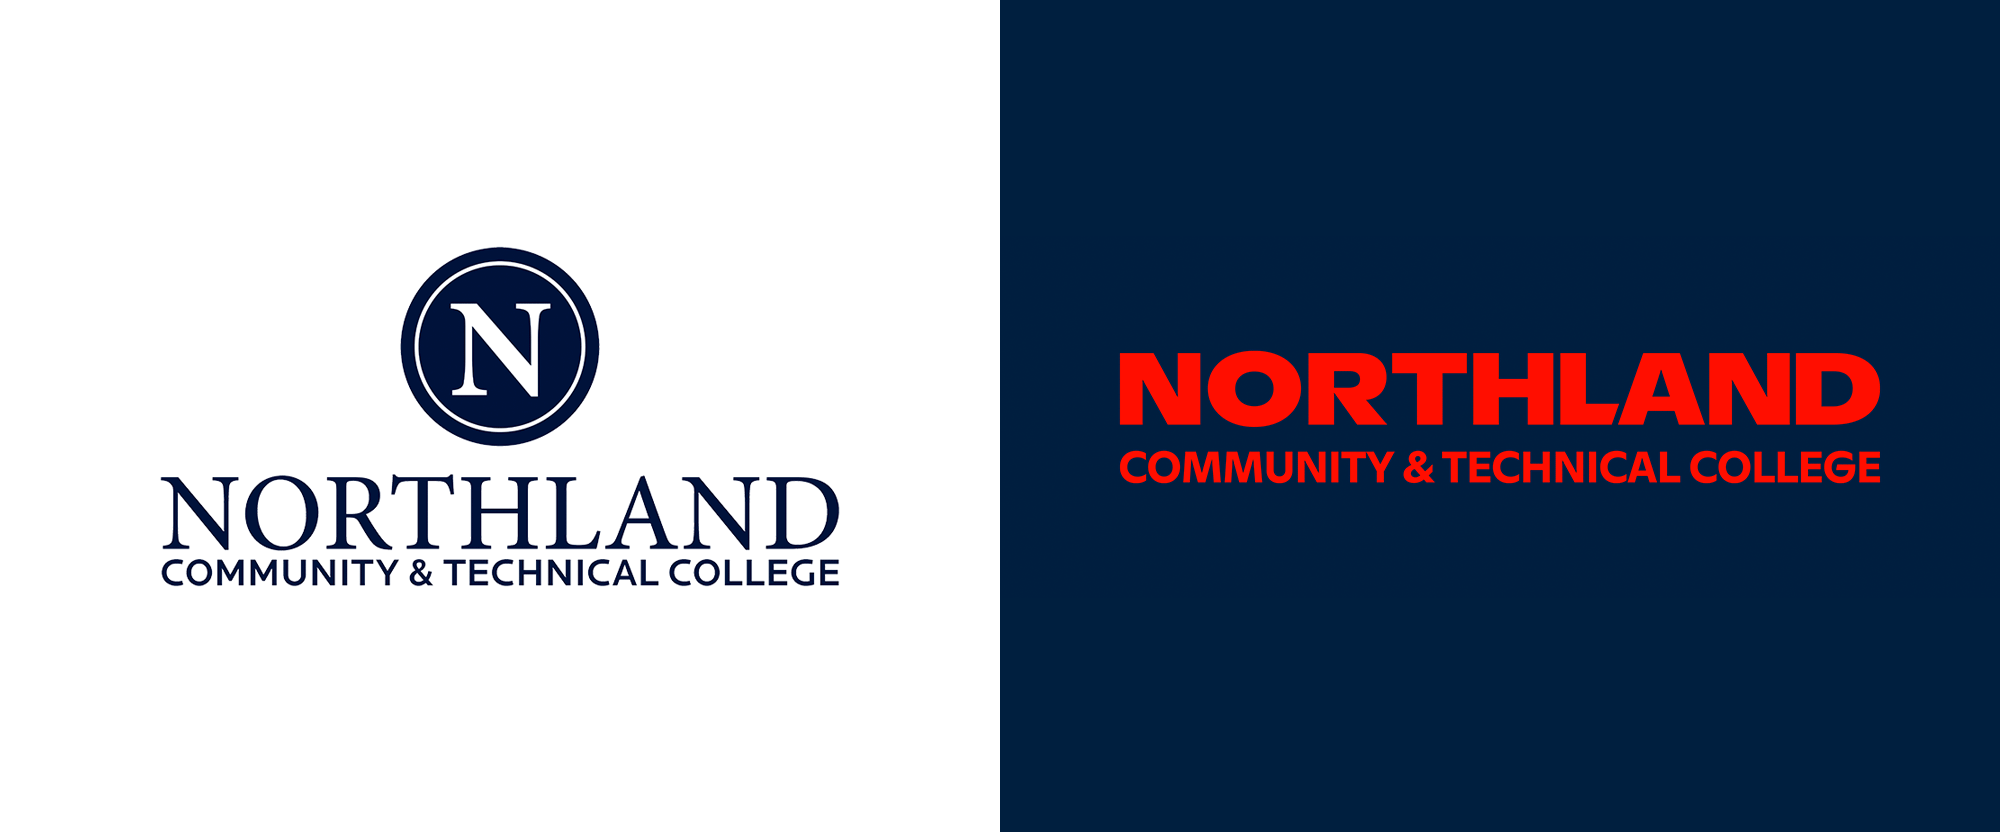 New Logo and Identity for Northland Community College and Northland Pioneers by Object